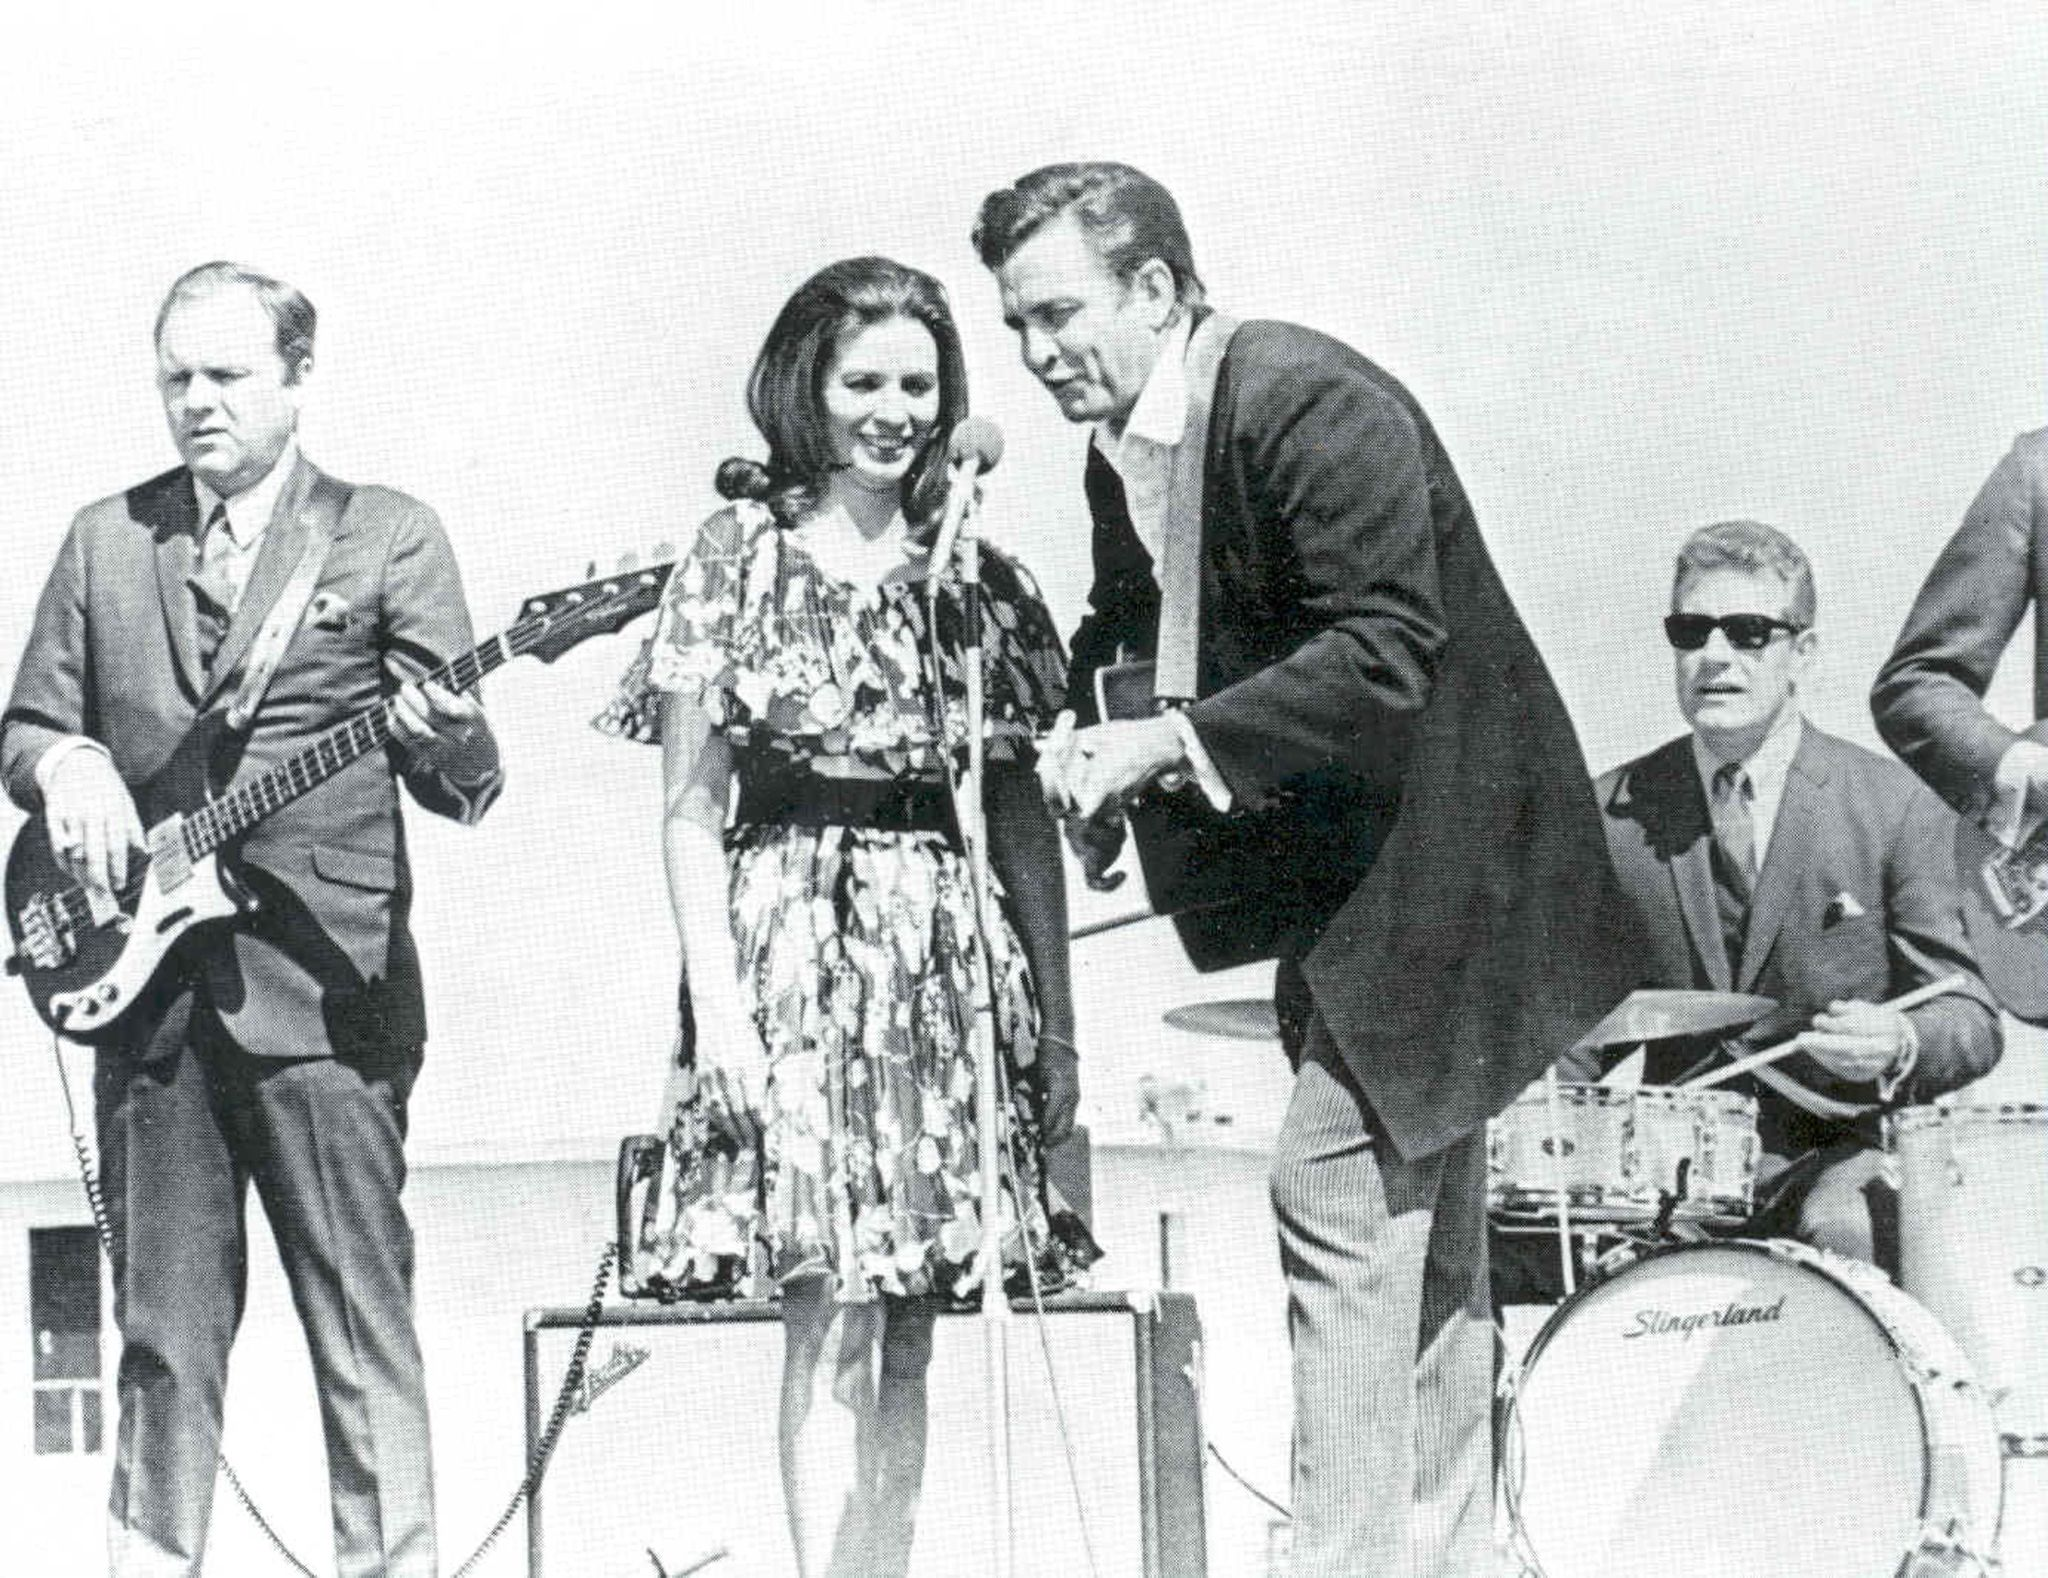 June Carter Cash and Johnny Cash in Walk the Line (2005)